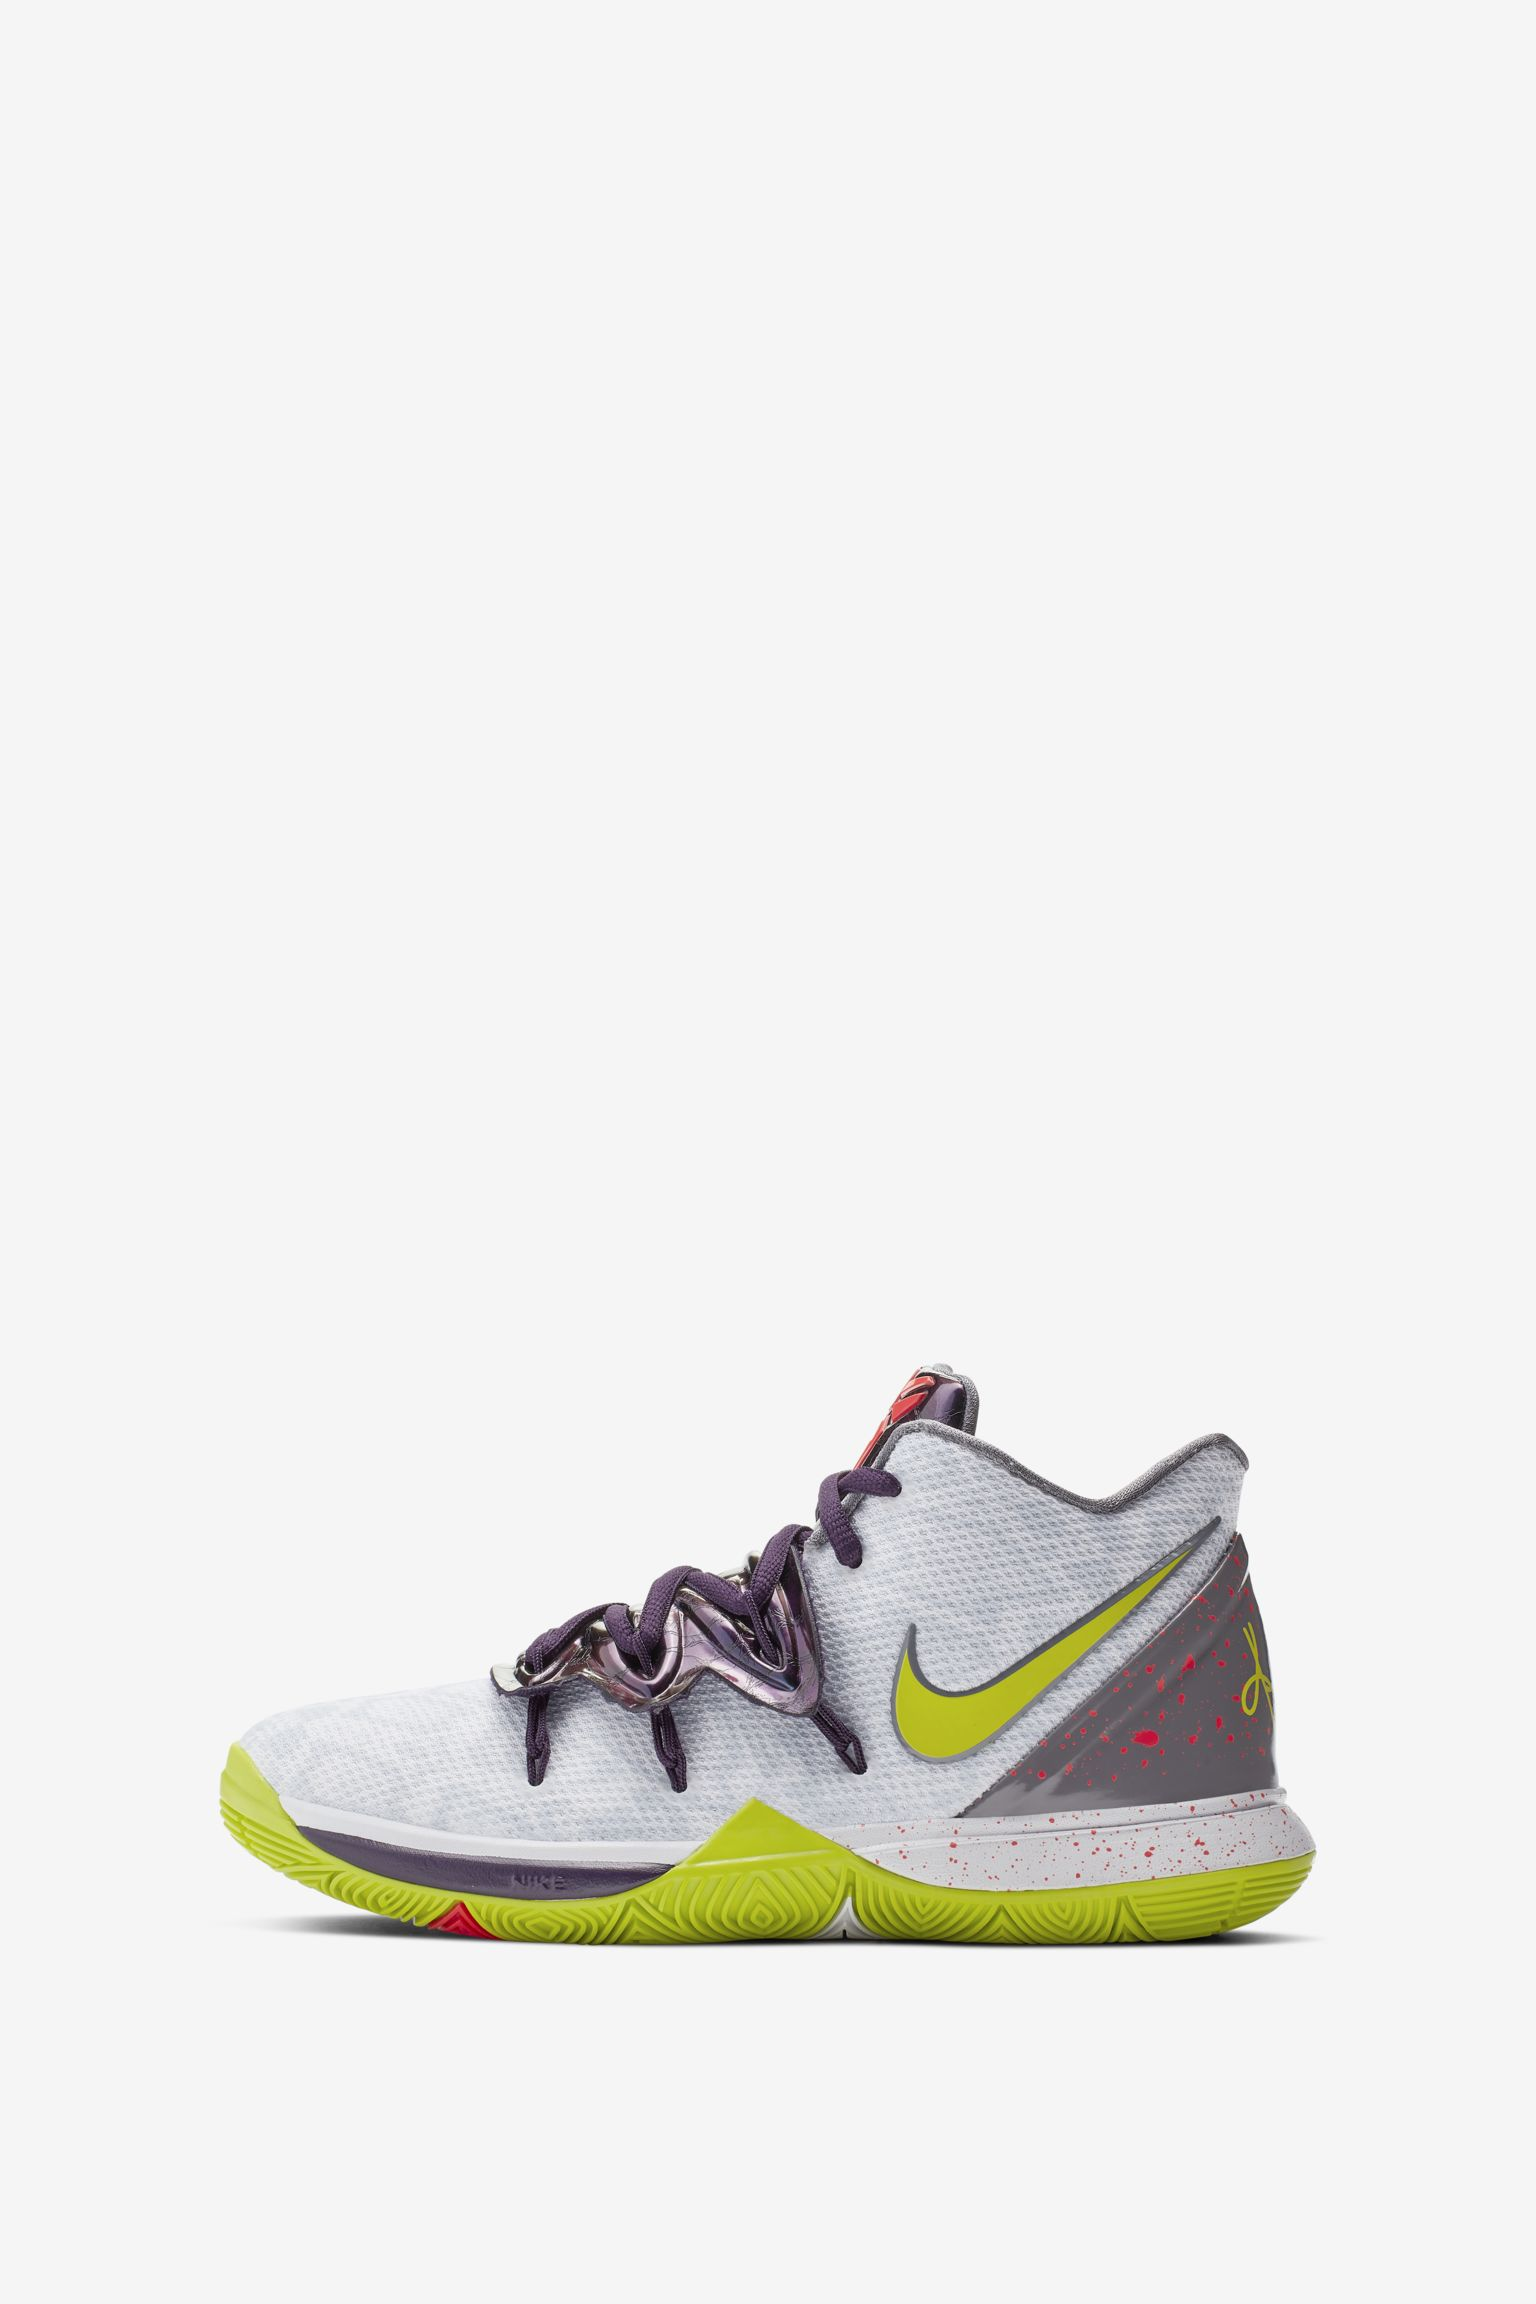 Kyrie 5 'Mamba Mentality' Release Date